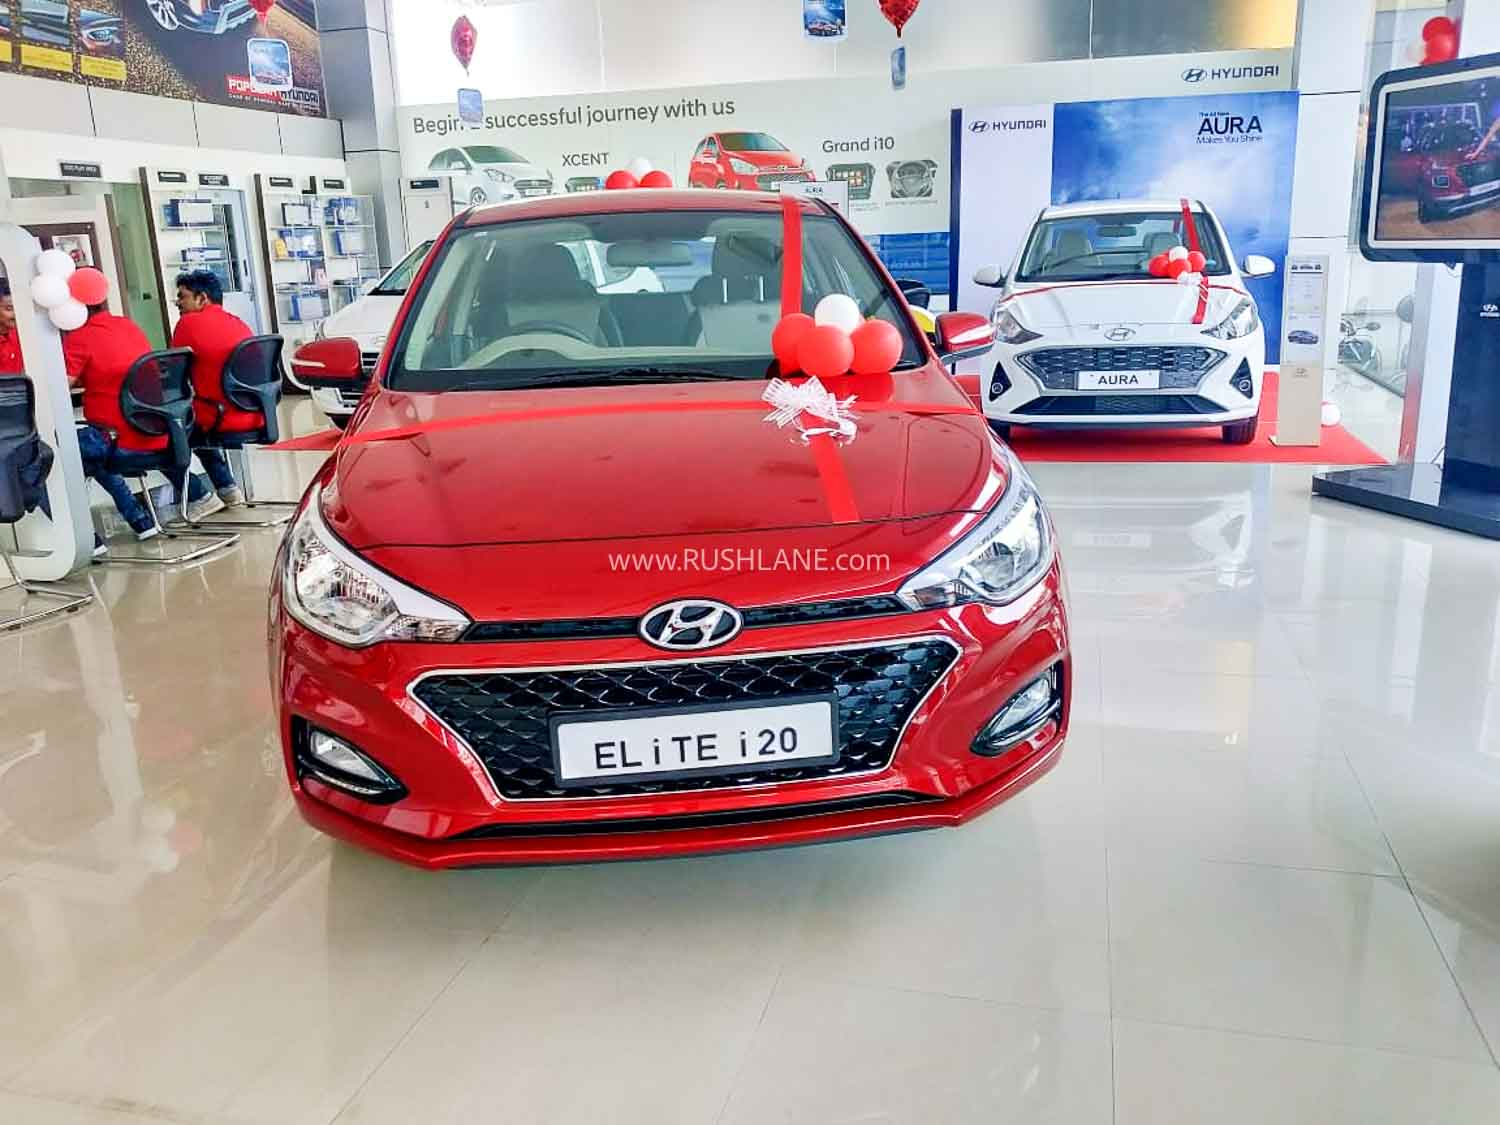 2020 Hyundai i20 BS6 deliveries start